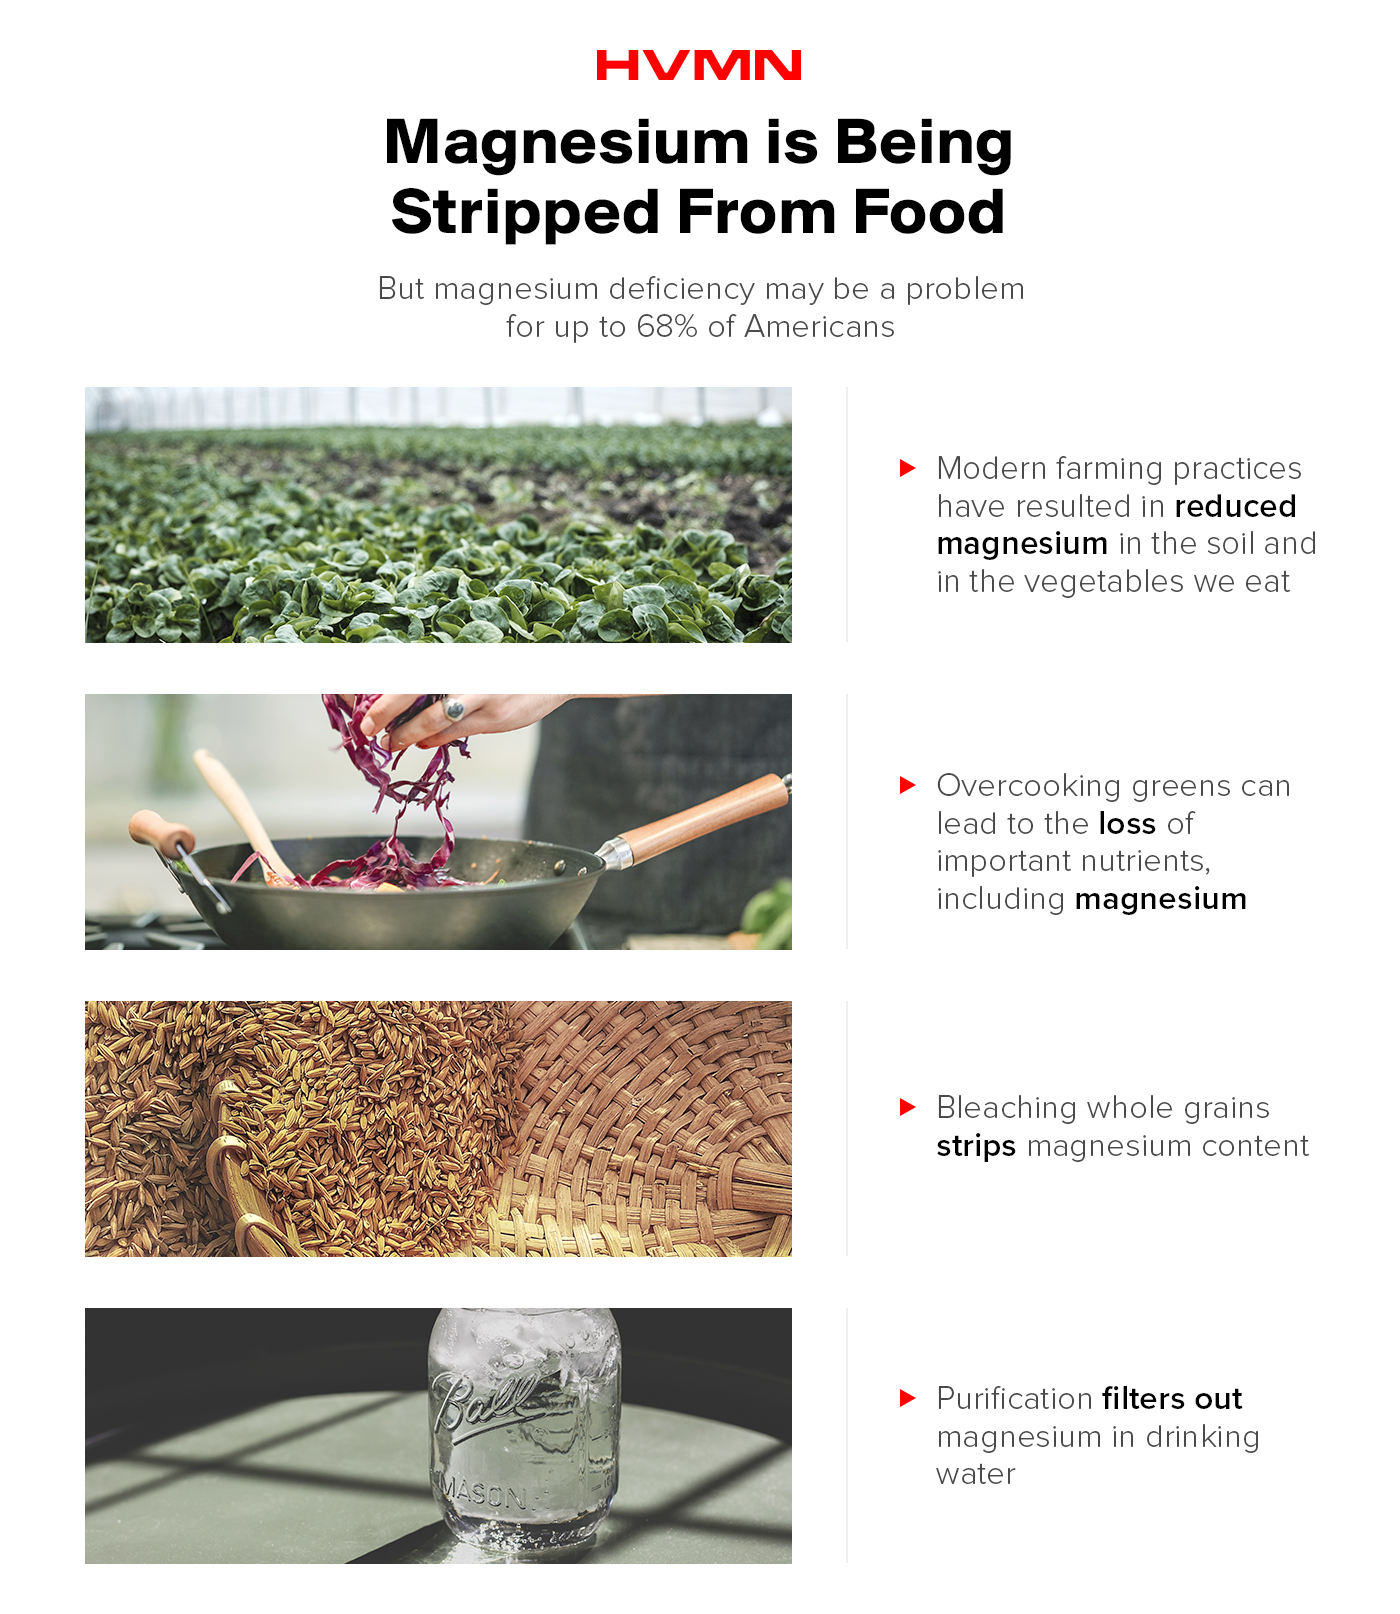 an image of a field, someone cooking, and a basket of grains showing that magnesium is being stripped from our food based on modern farming practices